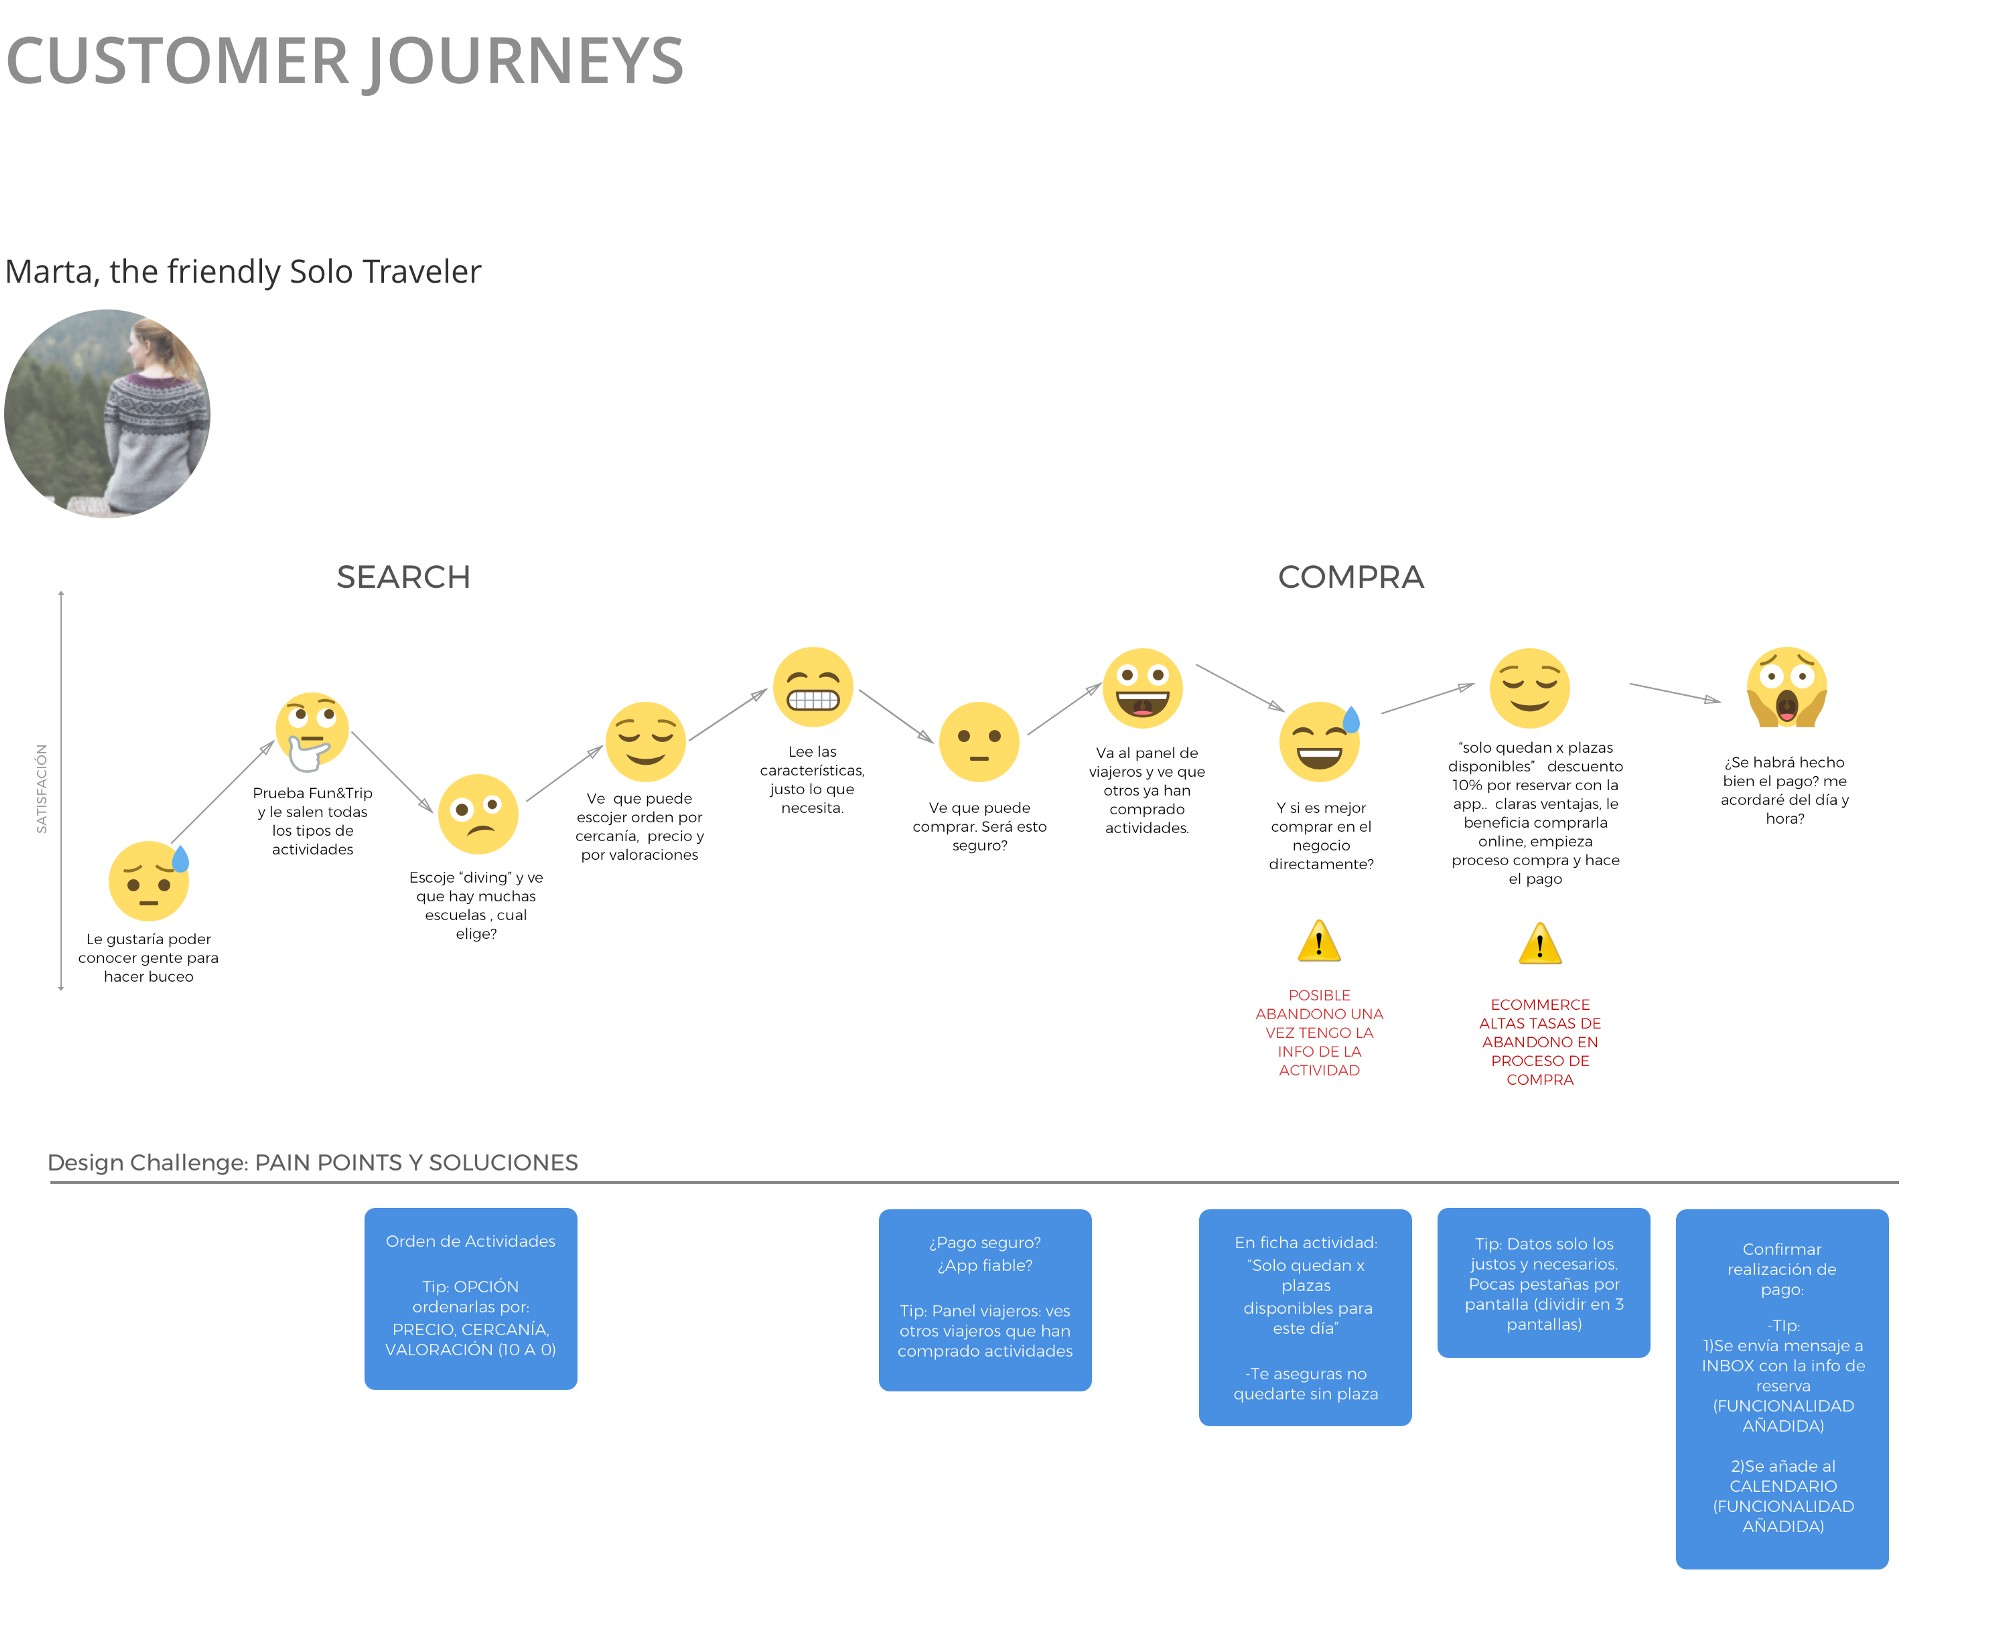 Ux case study tripfun prototypr here we see the walk that marta is doing through the search and the reservation online booking the blue boxes represent the pain points and solutions ccuart Image collections